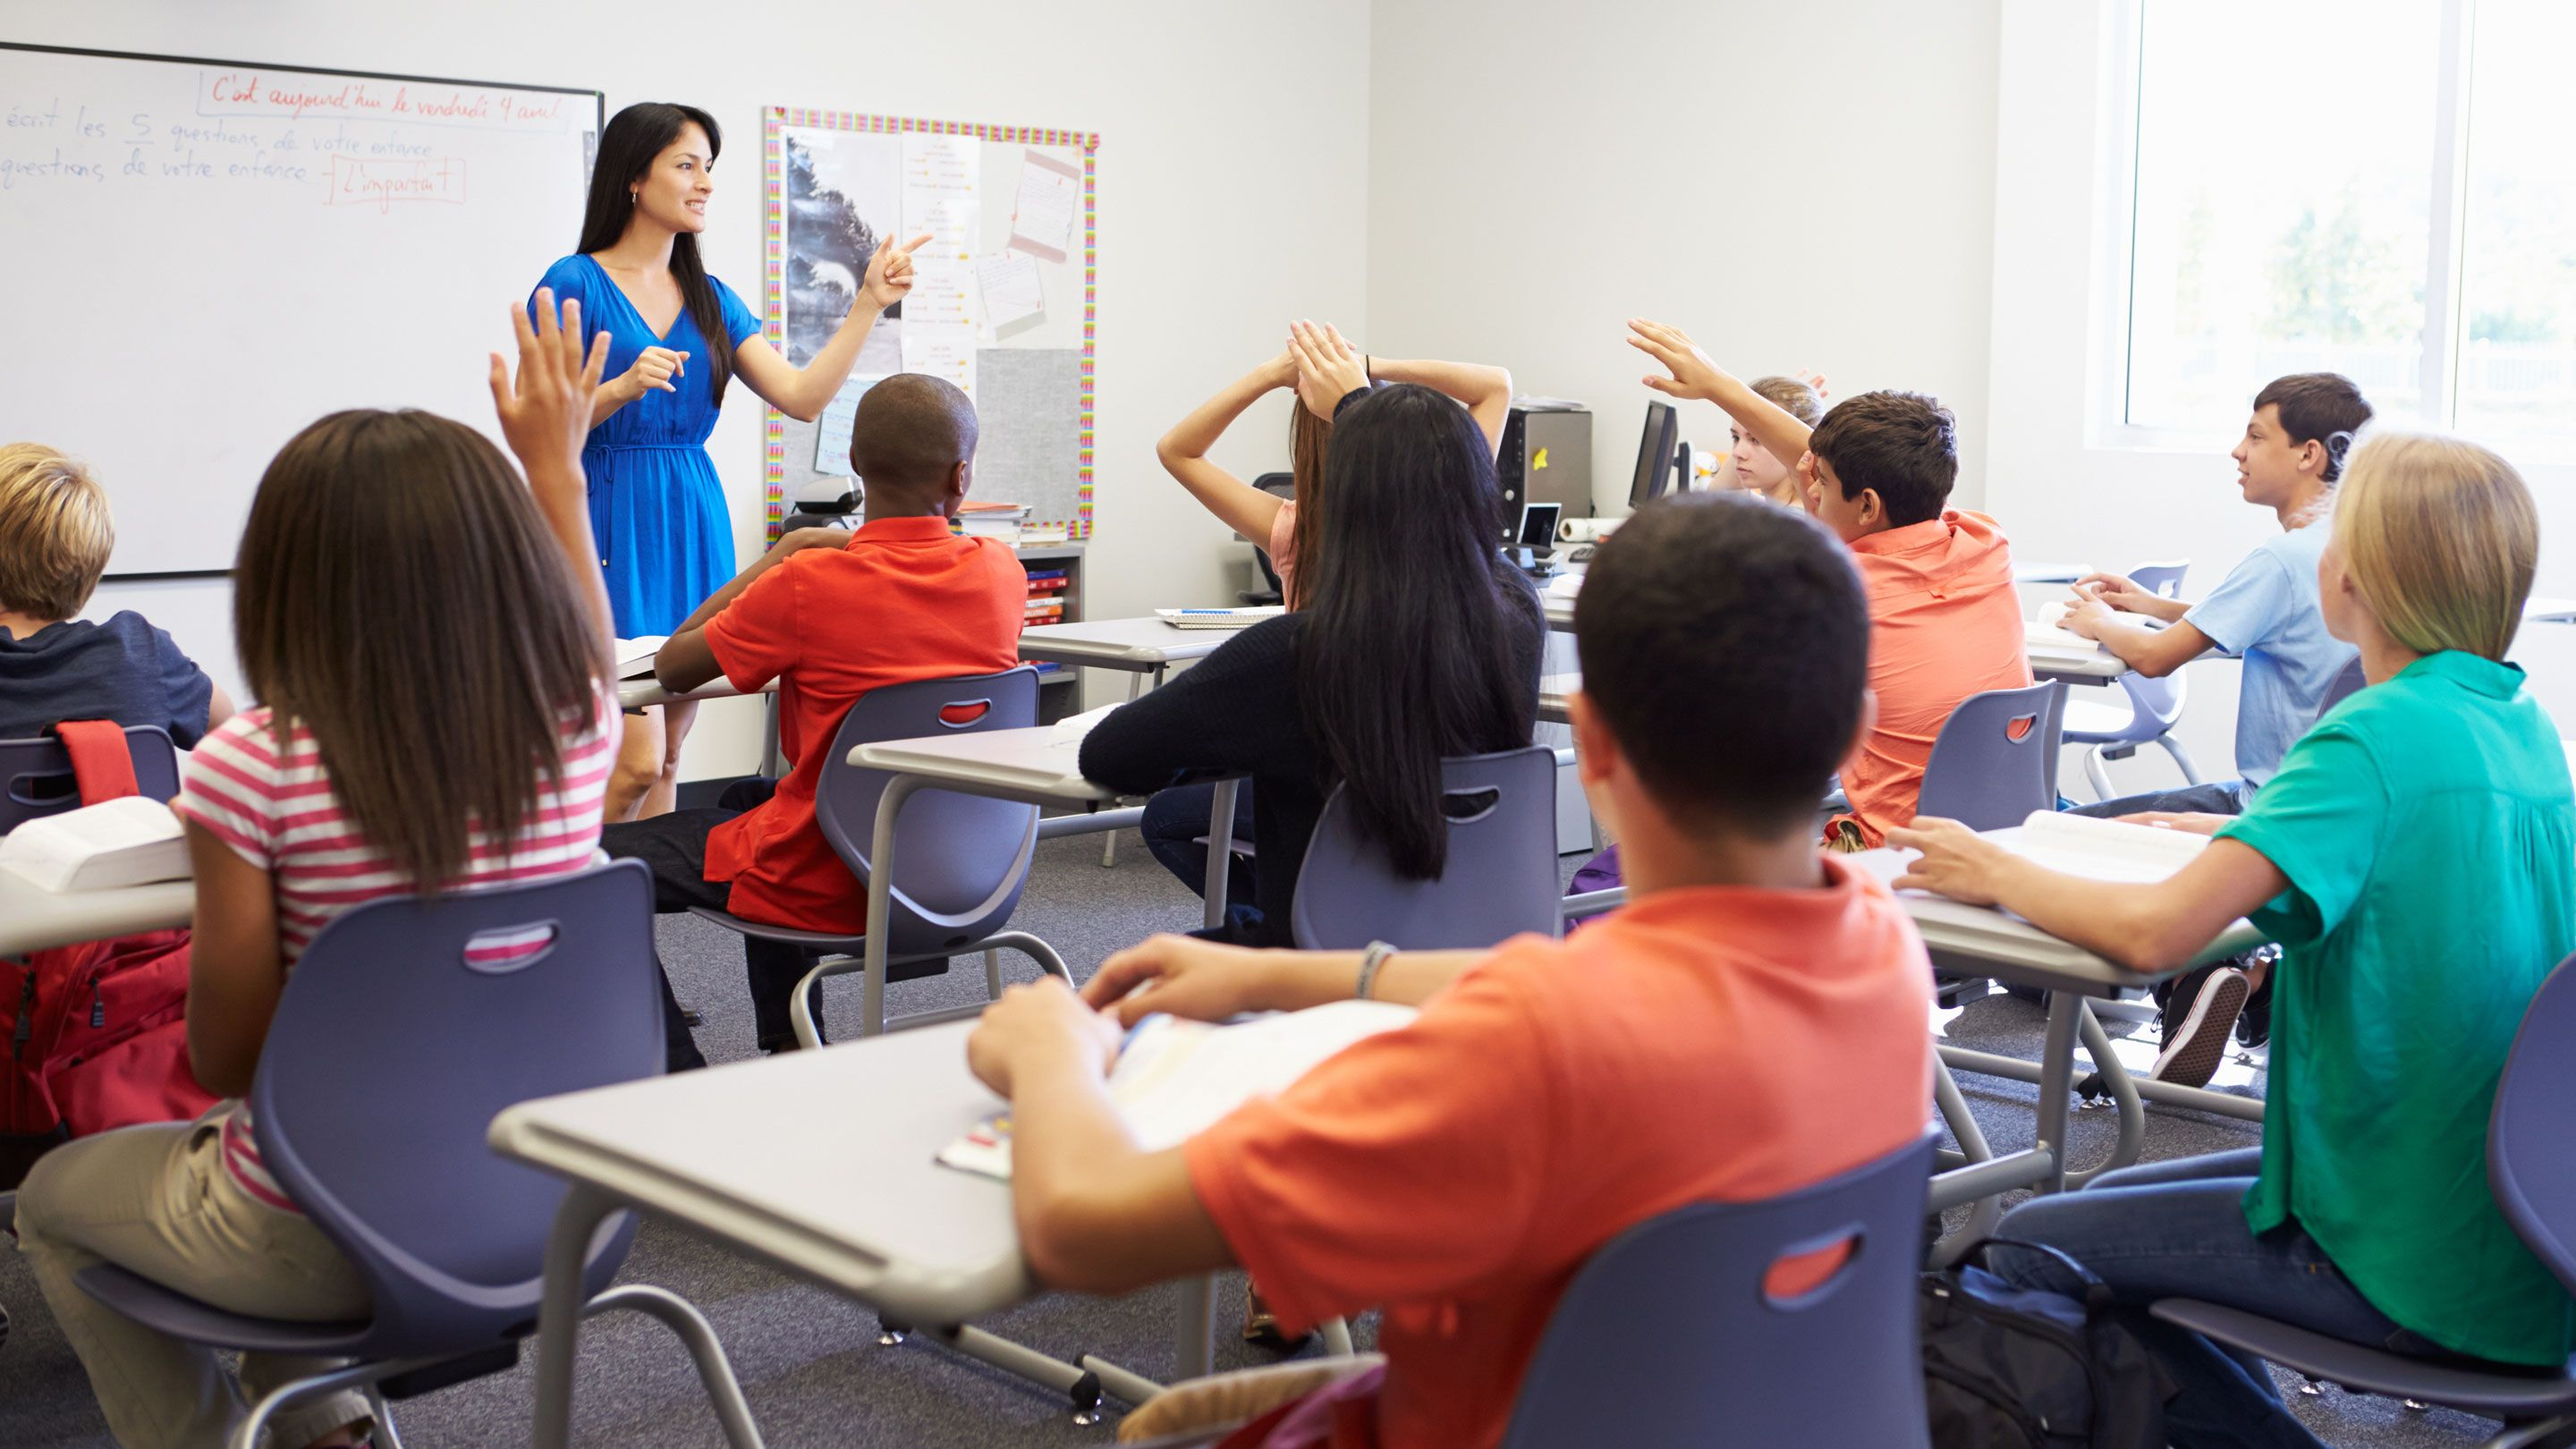 Students raise their hands in a class.